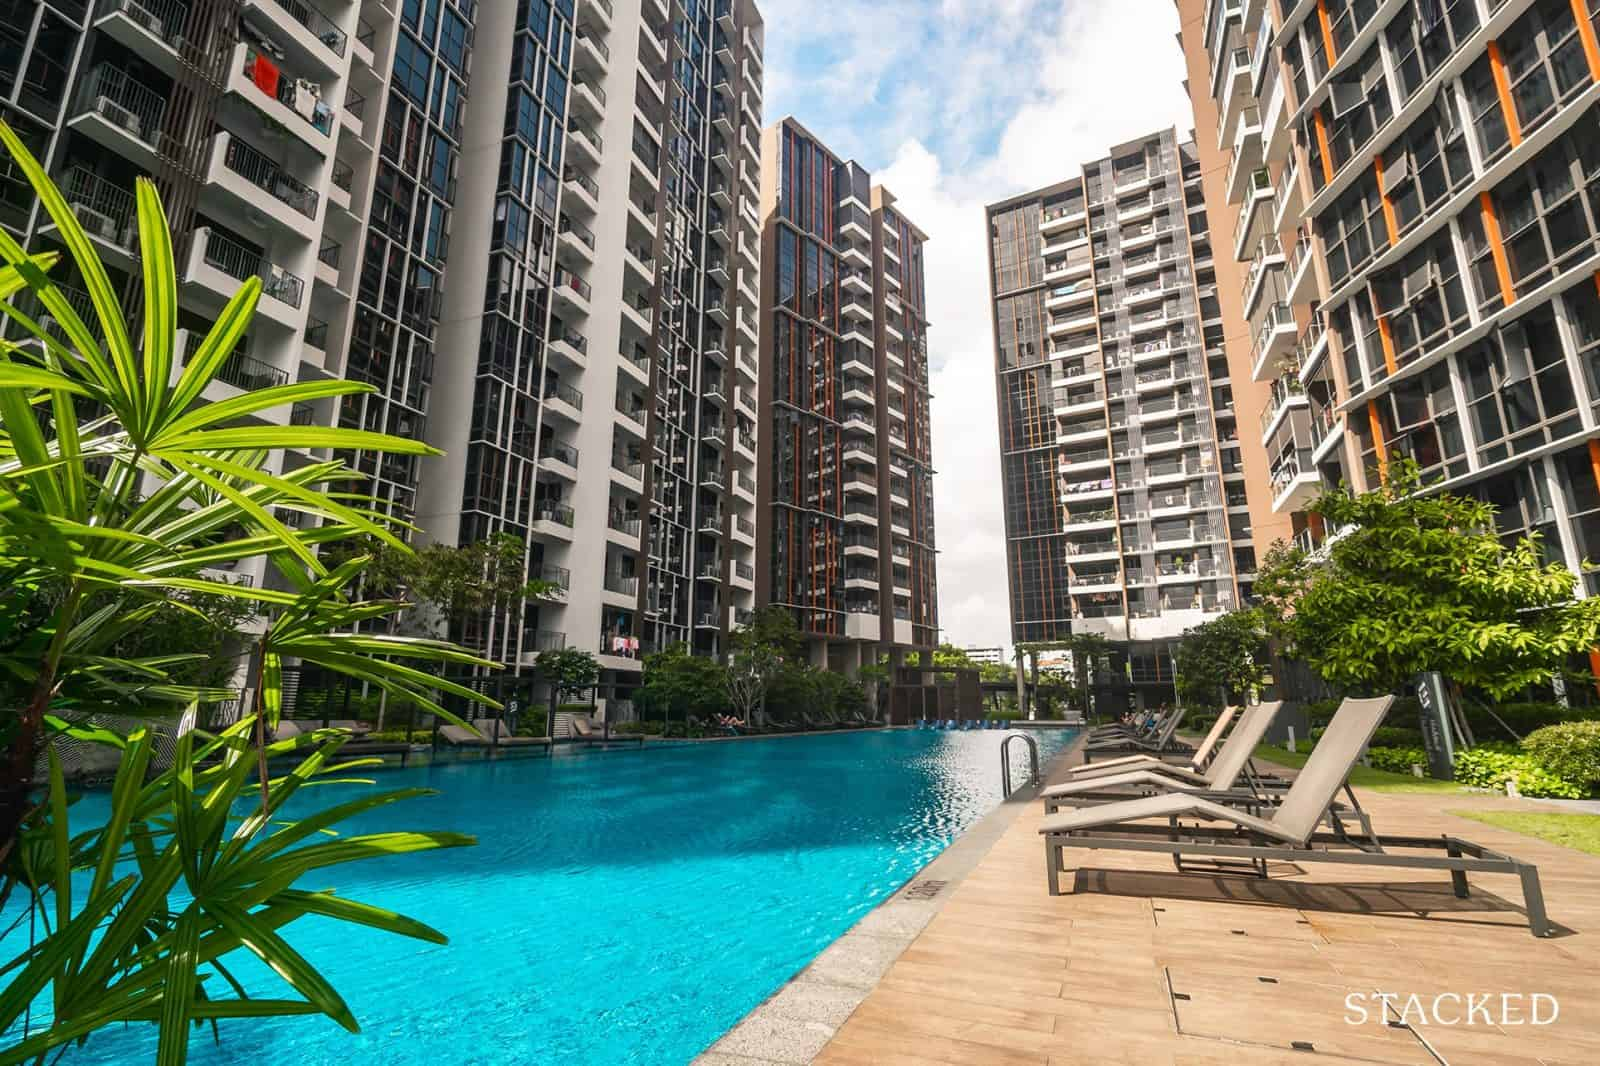 How Do I Choose Between A Freehold Or Leasehold Condo?